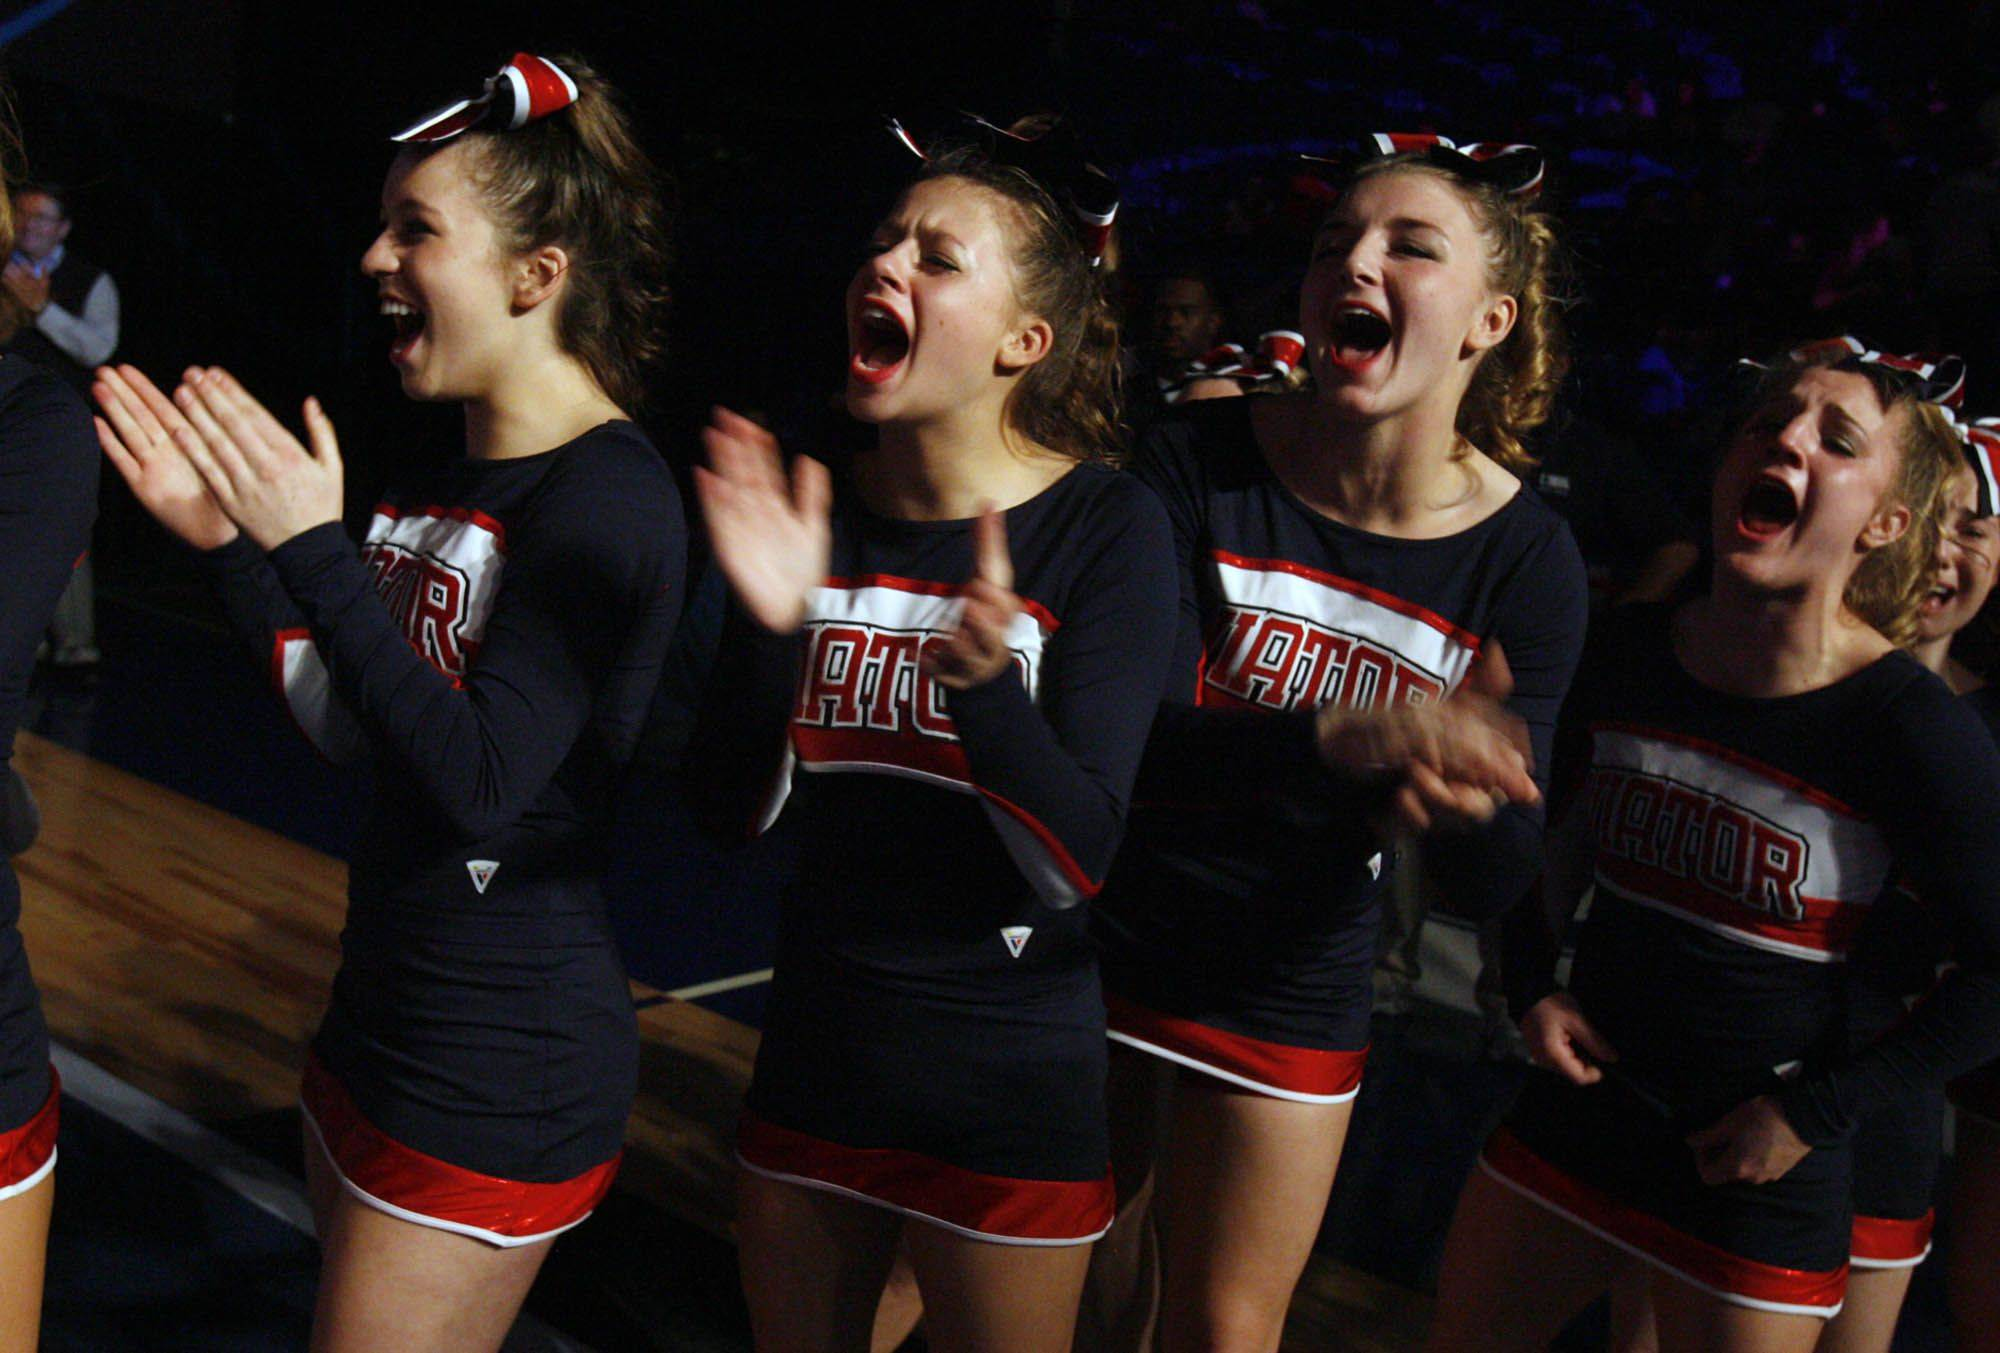 St. Viator High School cheerleading team celebrate taking first place at IHSA cheerleading state finals for the medium school category at U.S. Cellular Coliseum in Bloomington on Saturday.